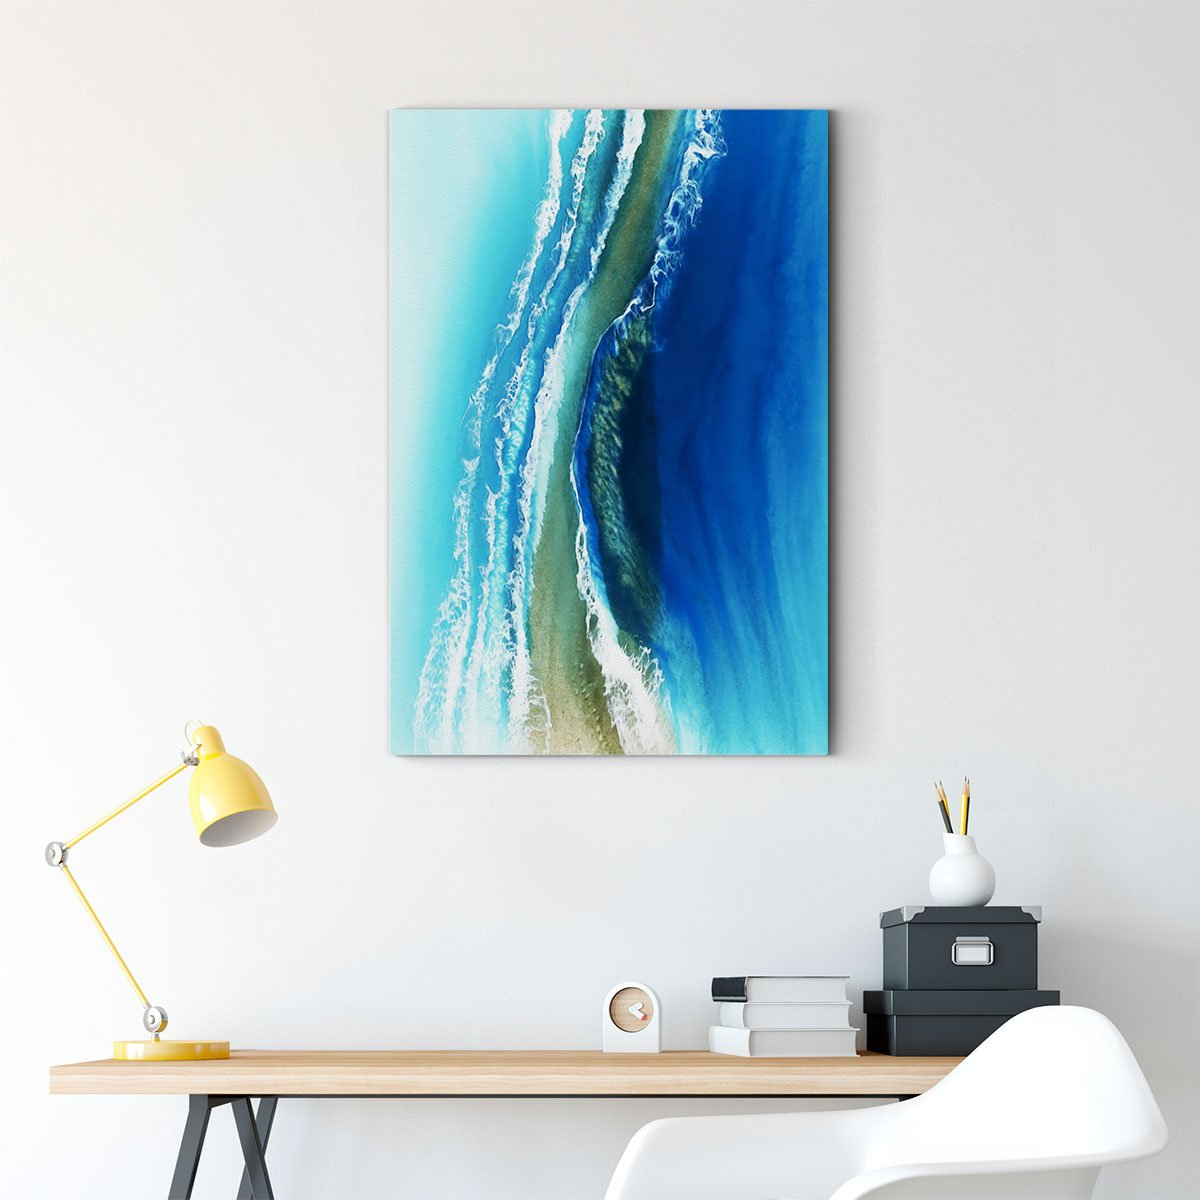 Blue ocean abstract decorative painting 011